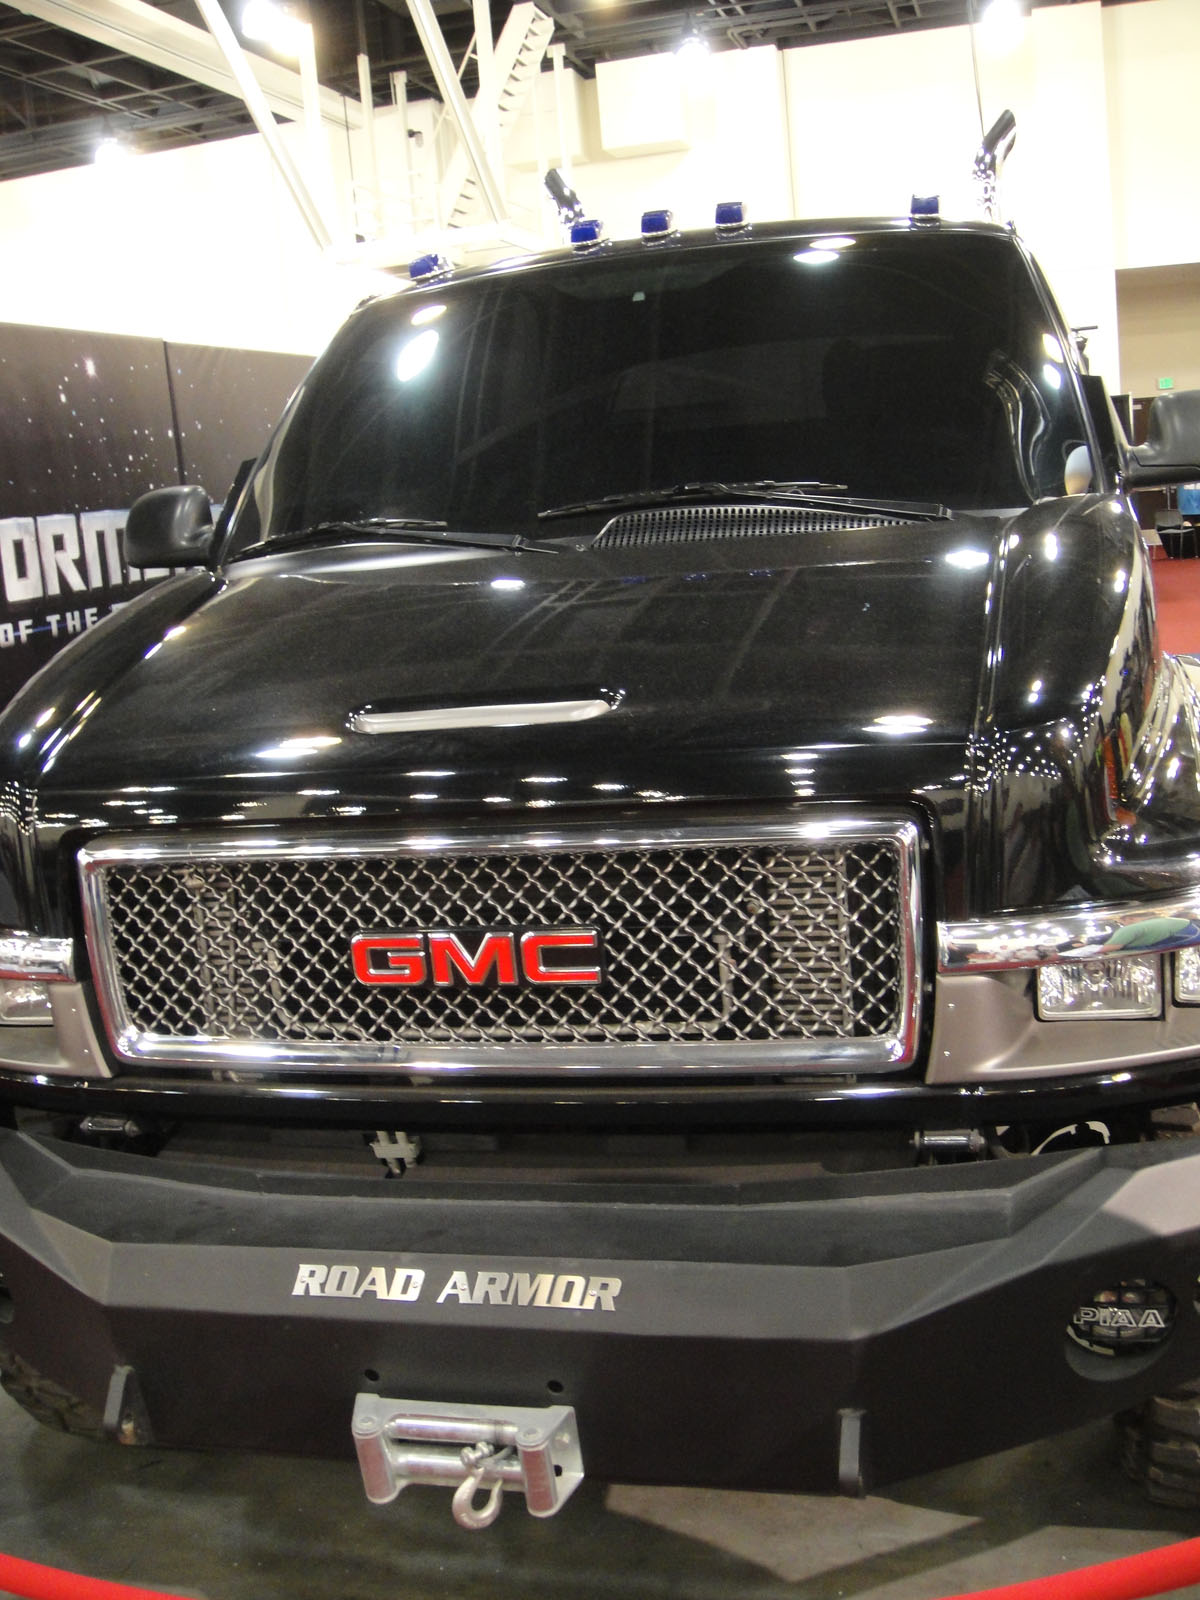 What Kind Of Truck Is Ironhide : truck, ironhide, File:BotCon, Ironhide, Topkick, (5802069821).jpg, Wikimedia, Commons